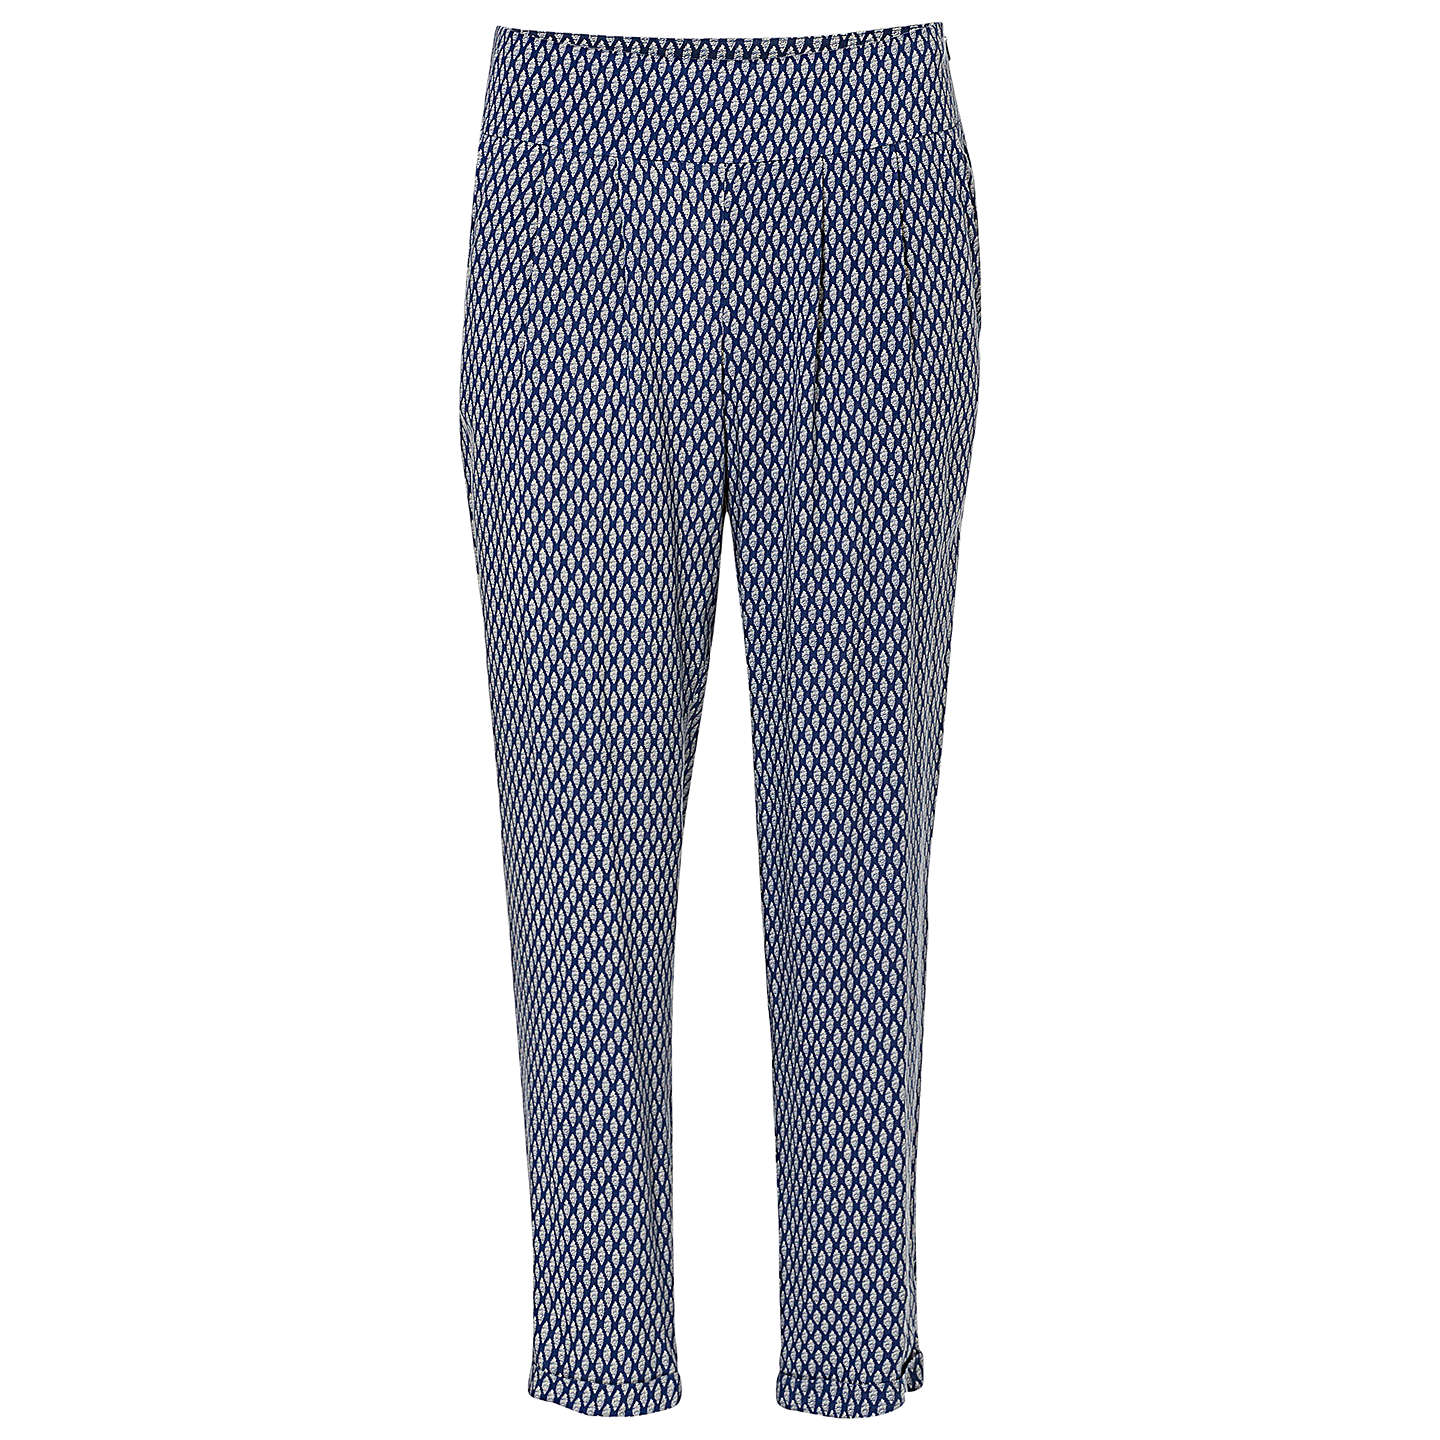 BuyBetty & Co. Graphic Print Trousers, Dark Blue, 10 Online at johnlewis.com